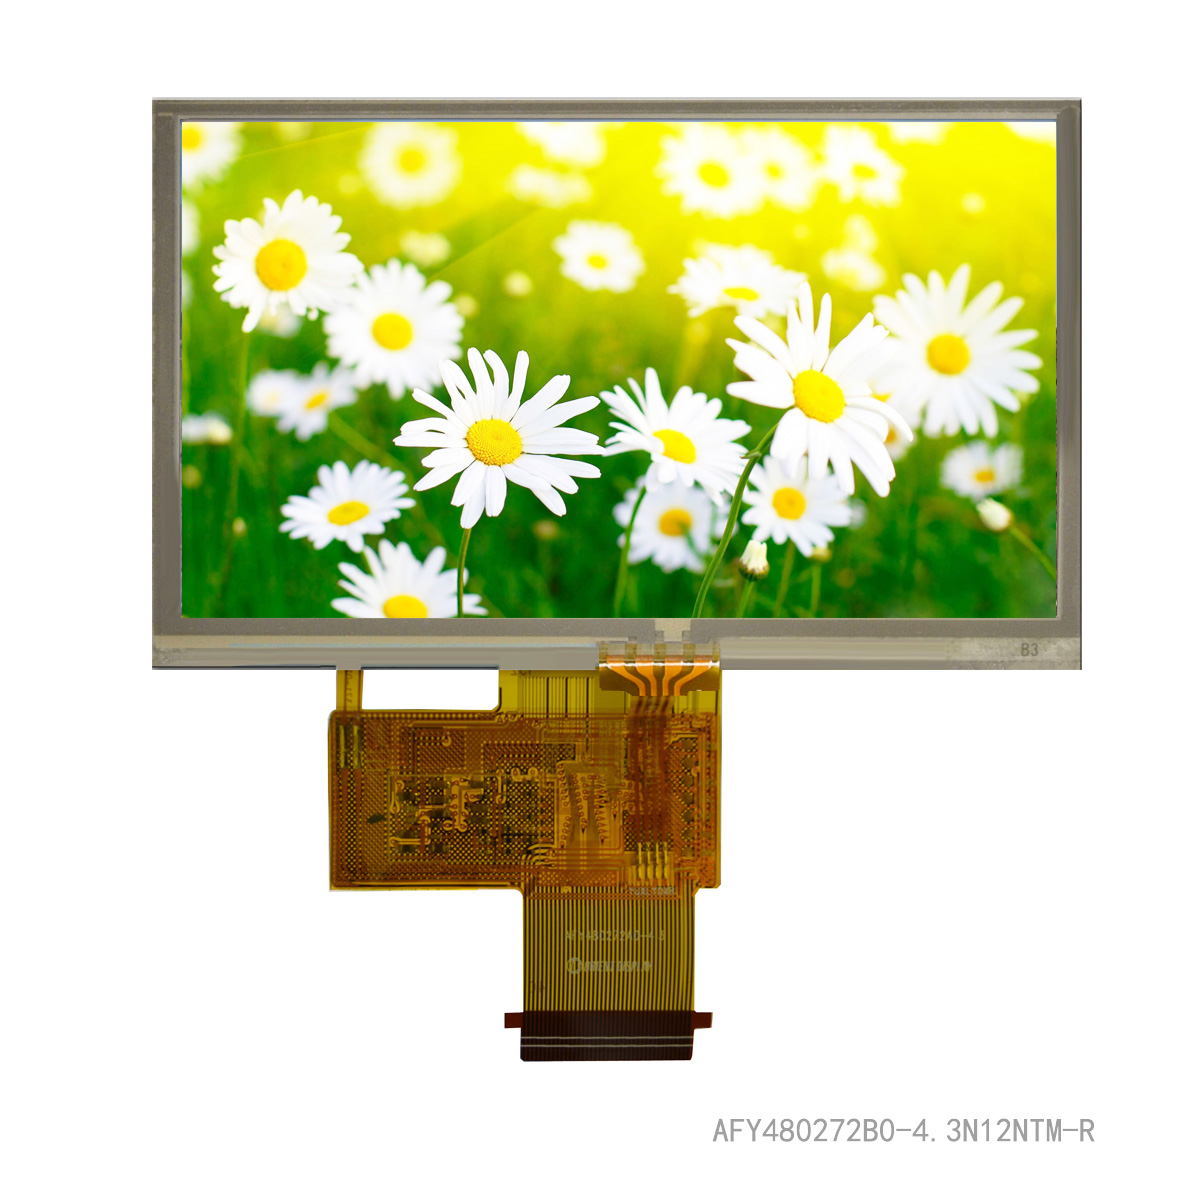 "4.3"" TFT, 480x272, 420 Nits, with Resistive Touch Panel"